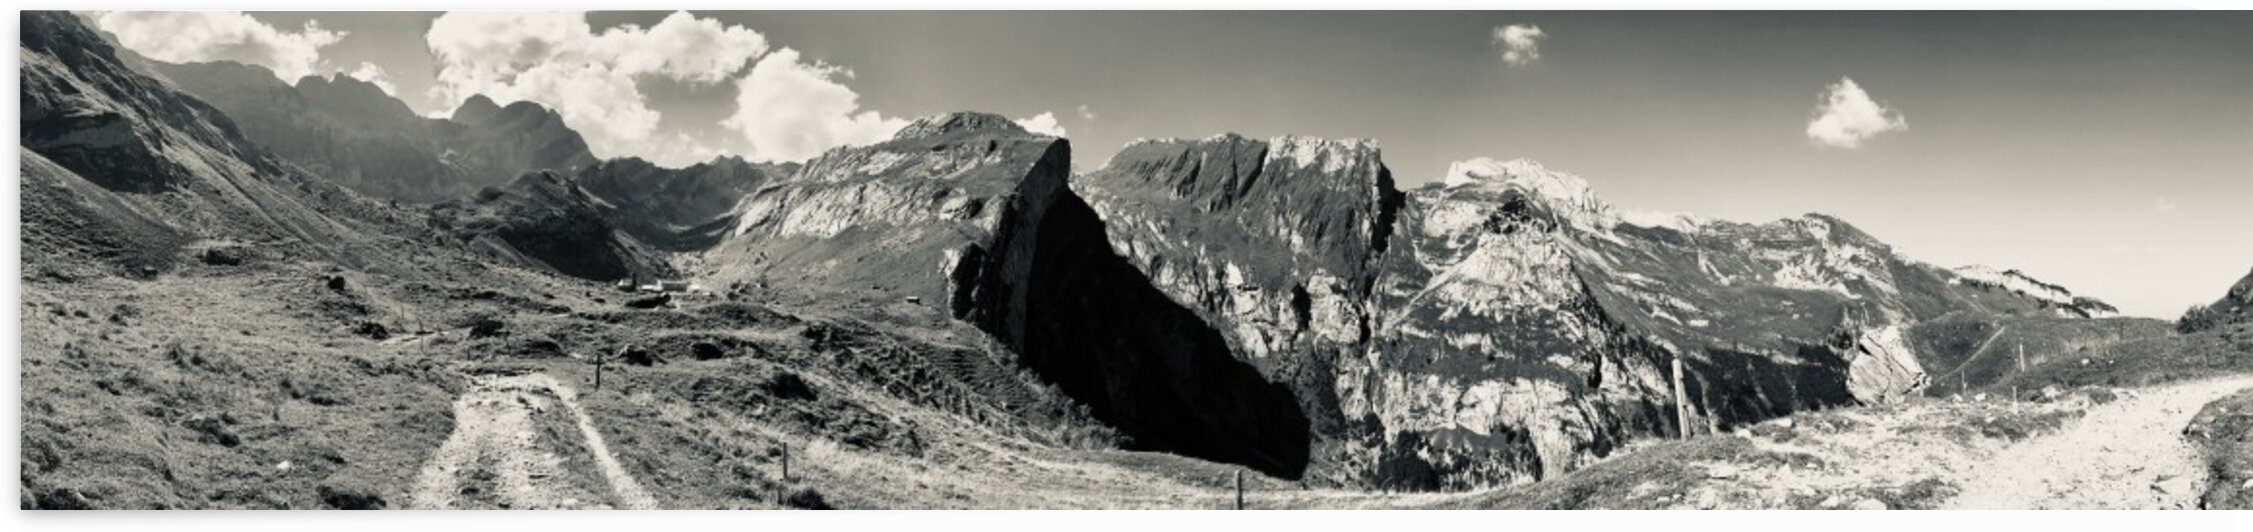 Panorama - Nice View to the Meglisalp and the Mountains Saentis is behind V by Swiss Art by Patrick Kobler